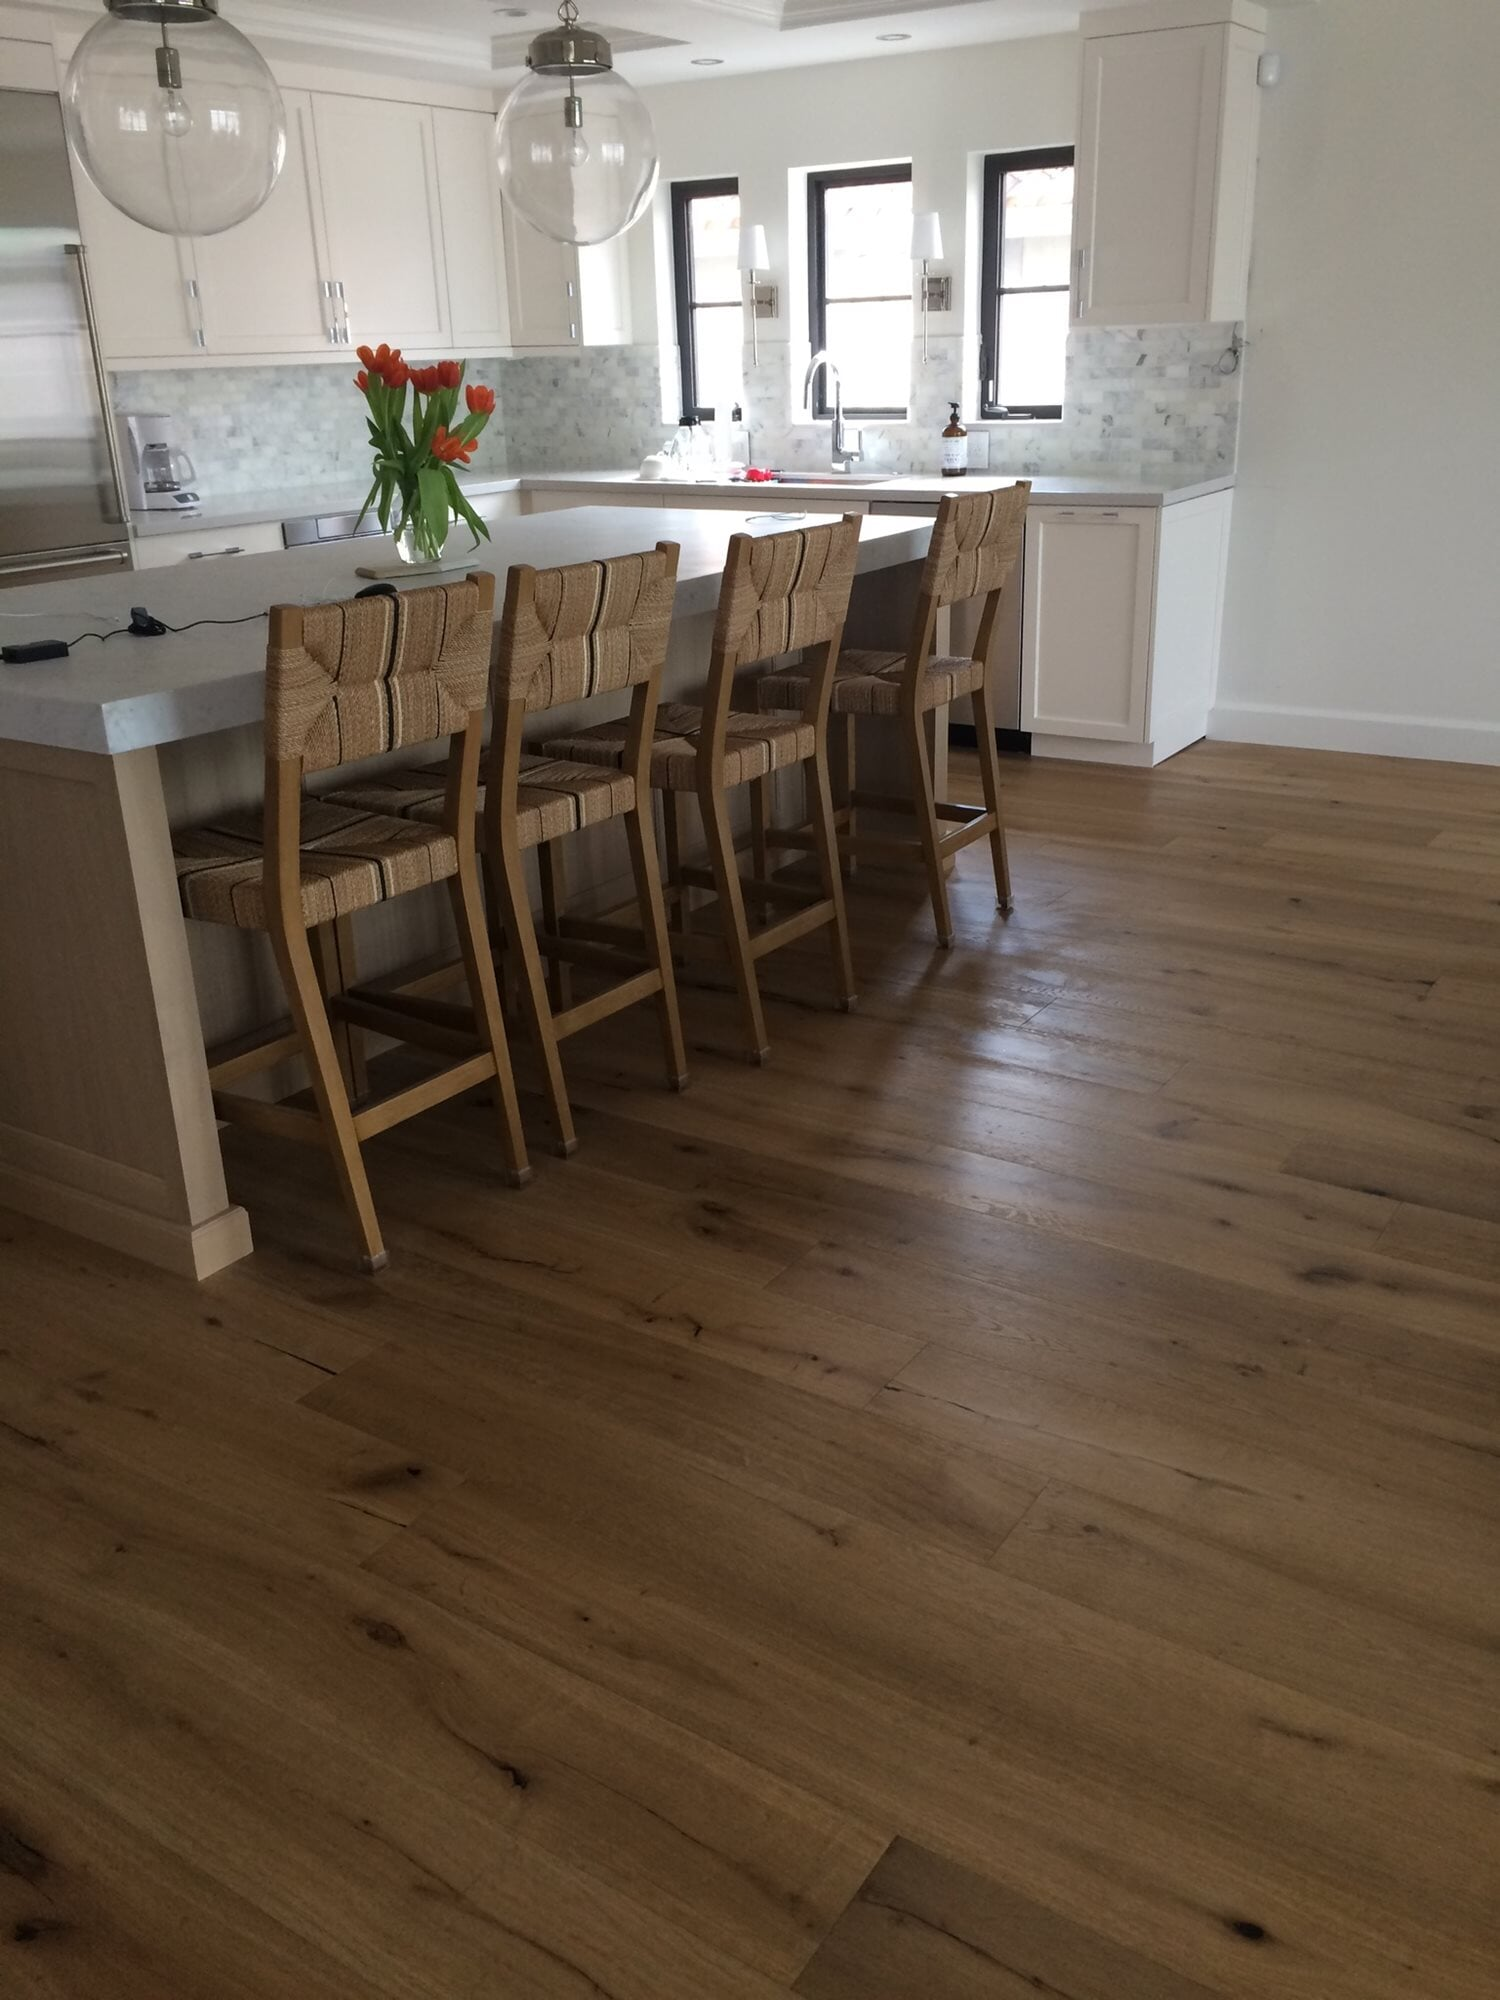 Classic hardwood flooring in Hobe Sound, FL from Floors For You Kitchen & Bath